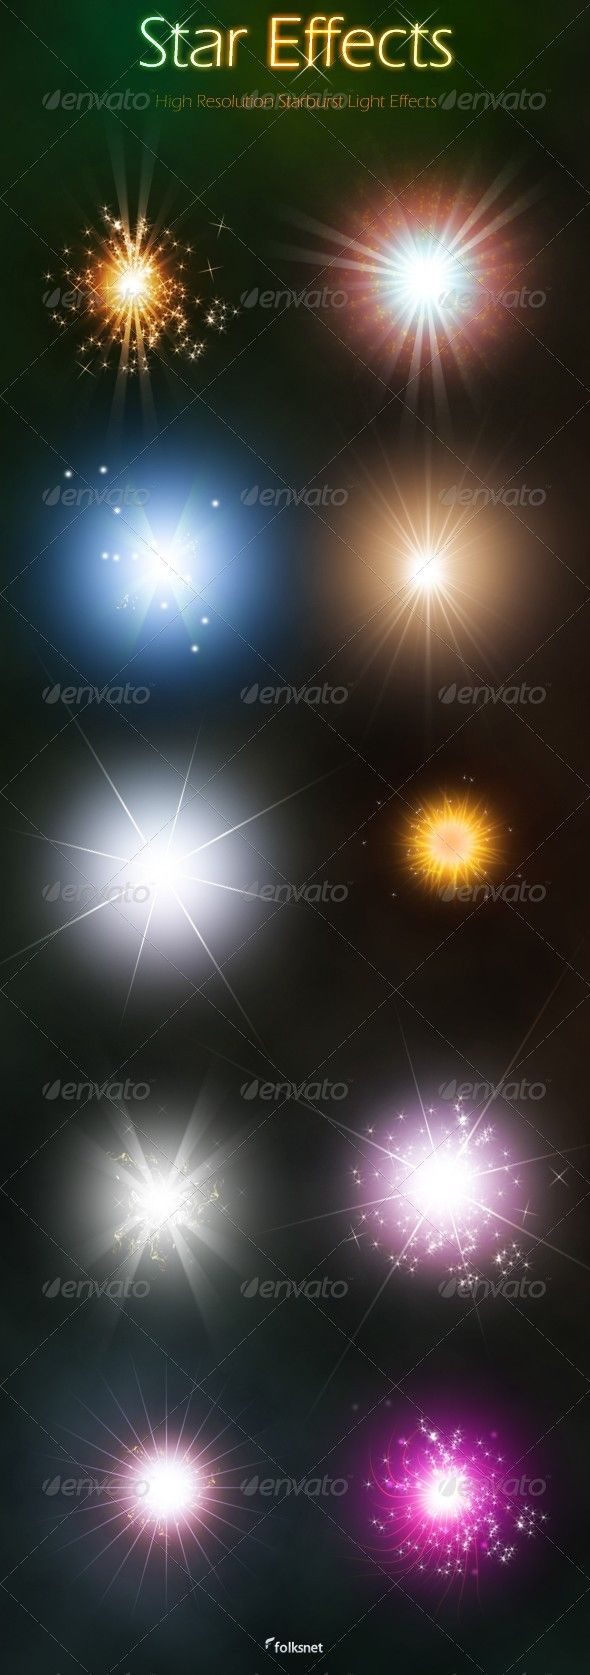 High Resolution Starburst Light Effects Average Size About Px Included  Psd File With